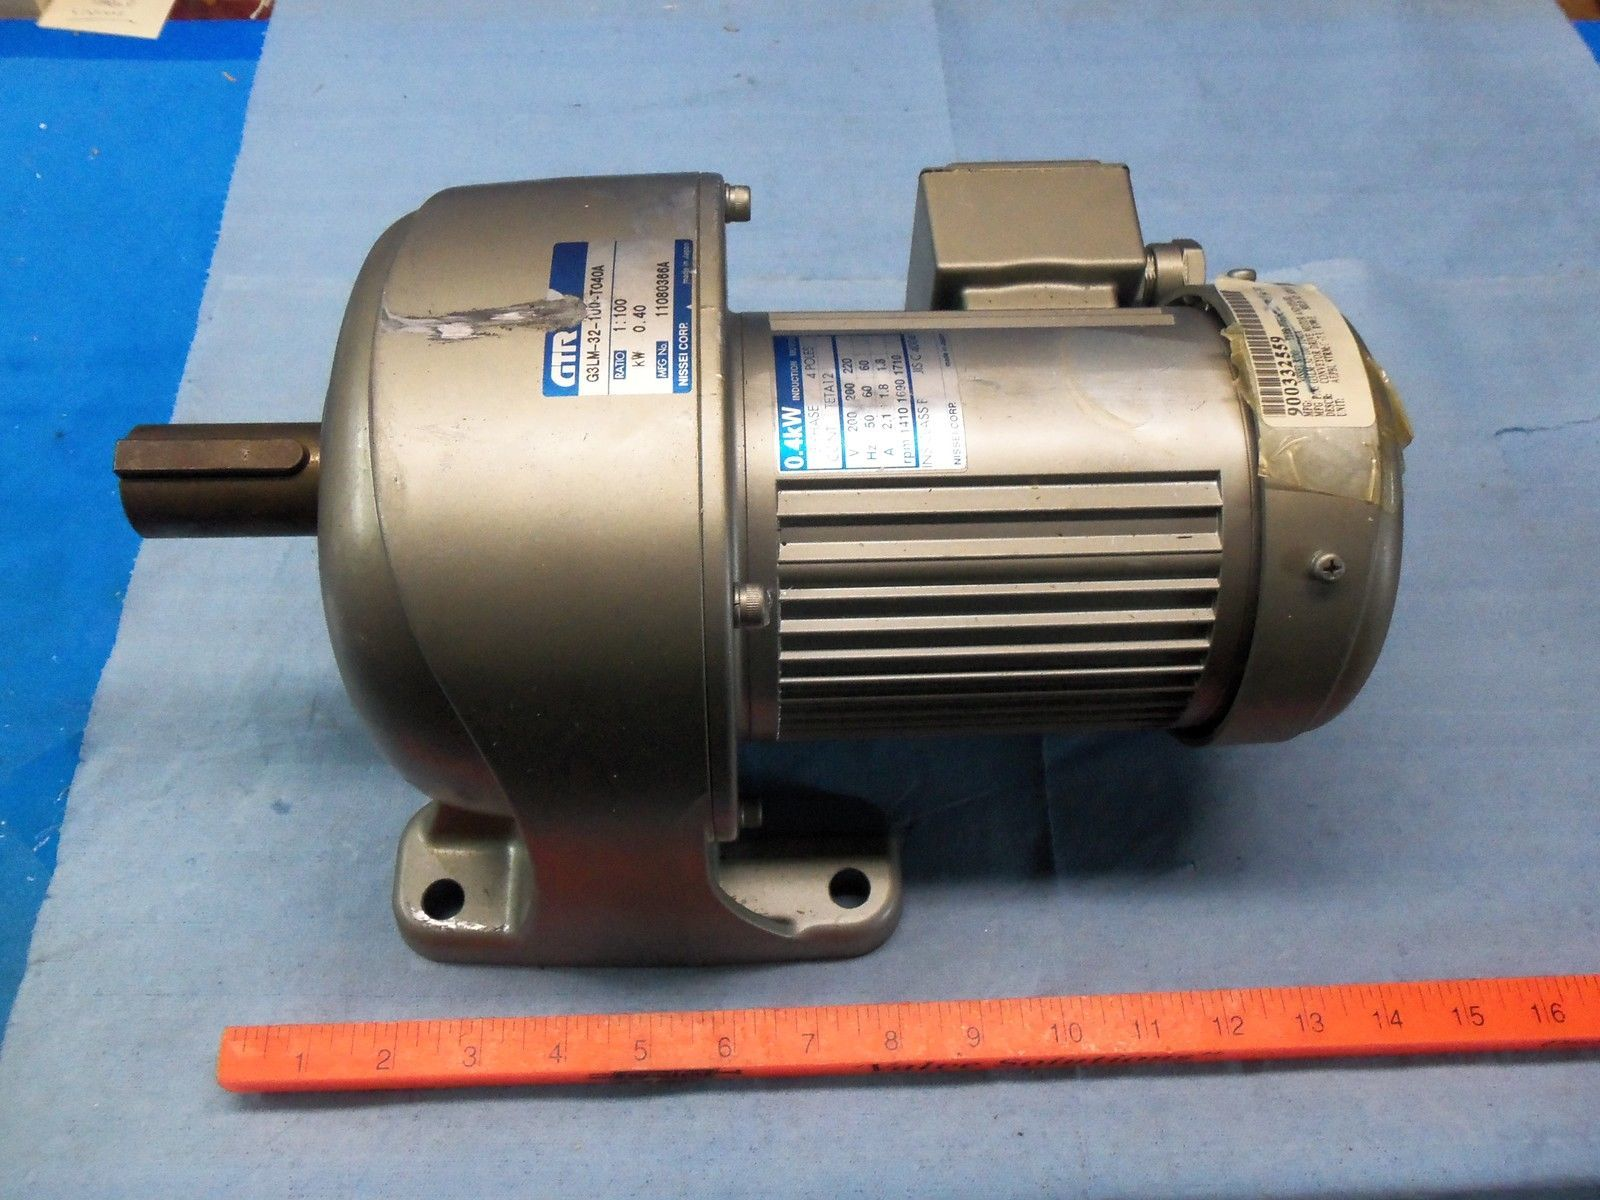 Nissei Gtr G3lm 32 100 Induction Motor Made In Japan